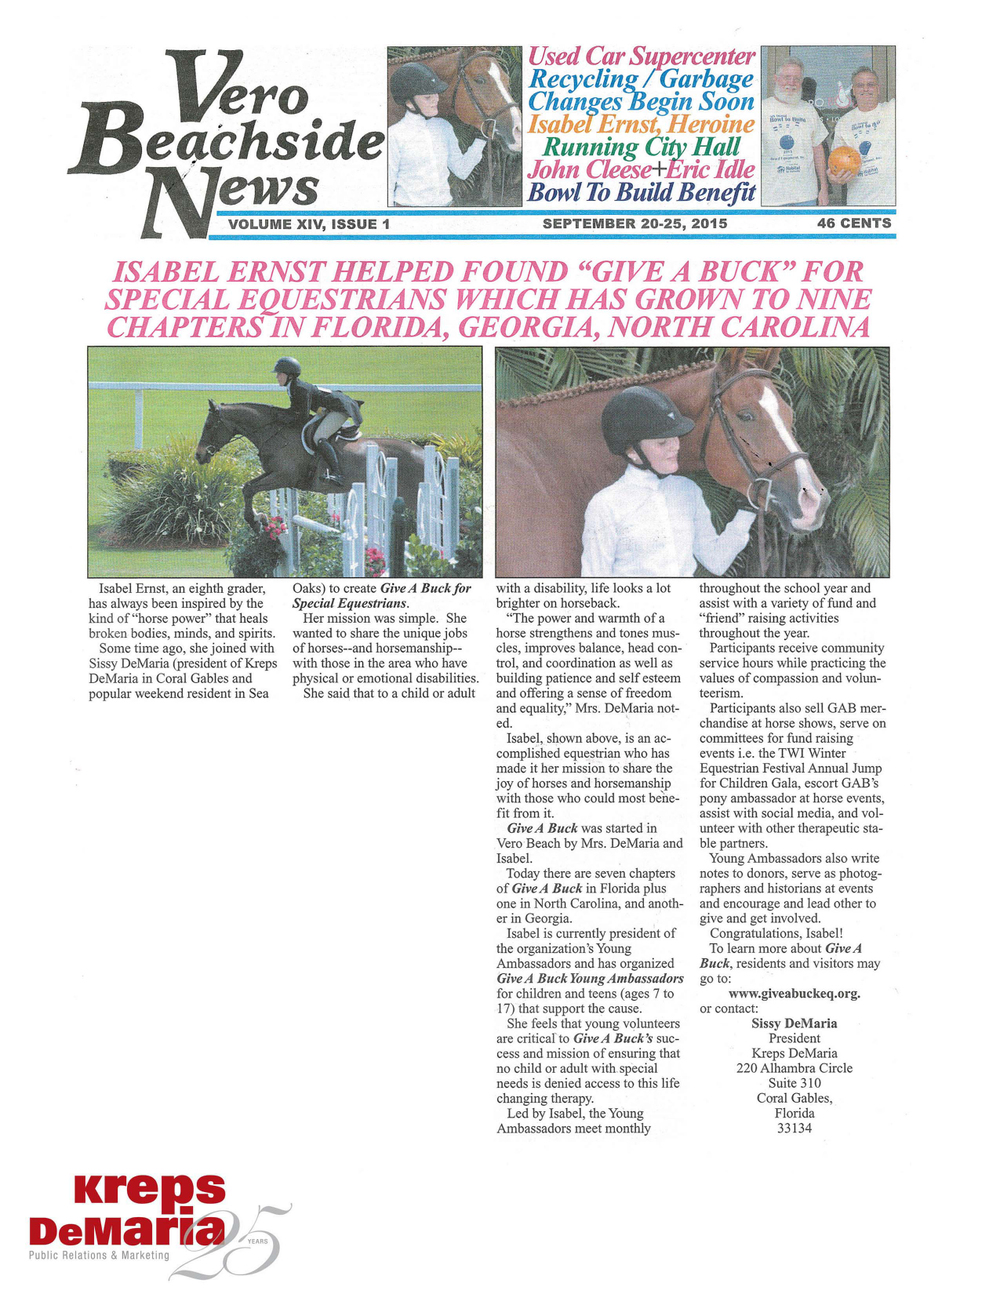 Vero Beachside News 09.25.2015.jpg